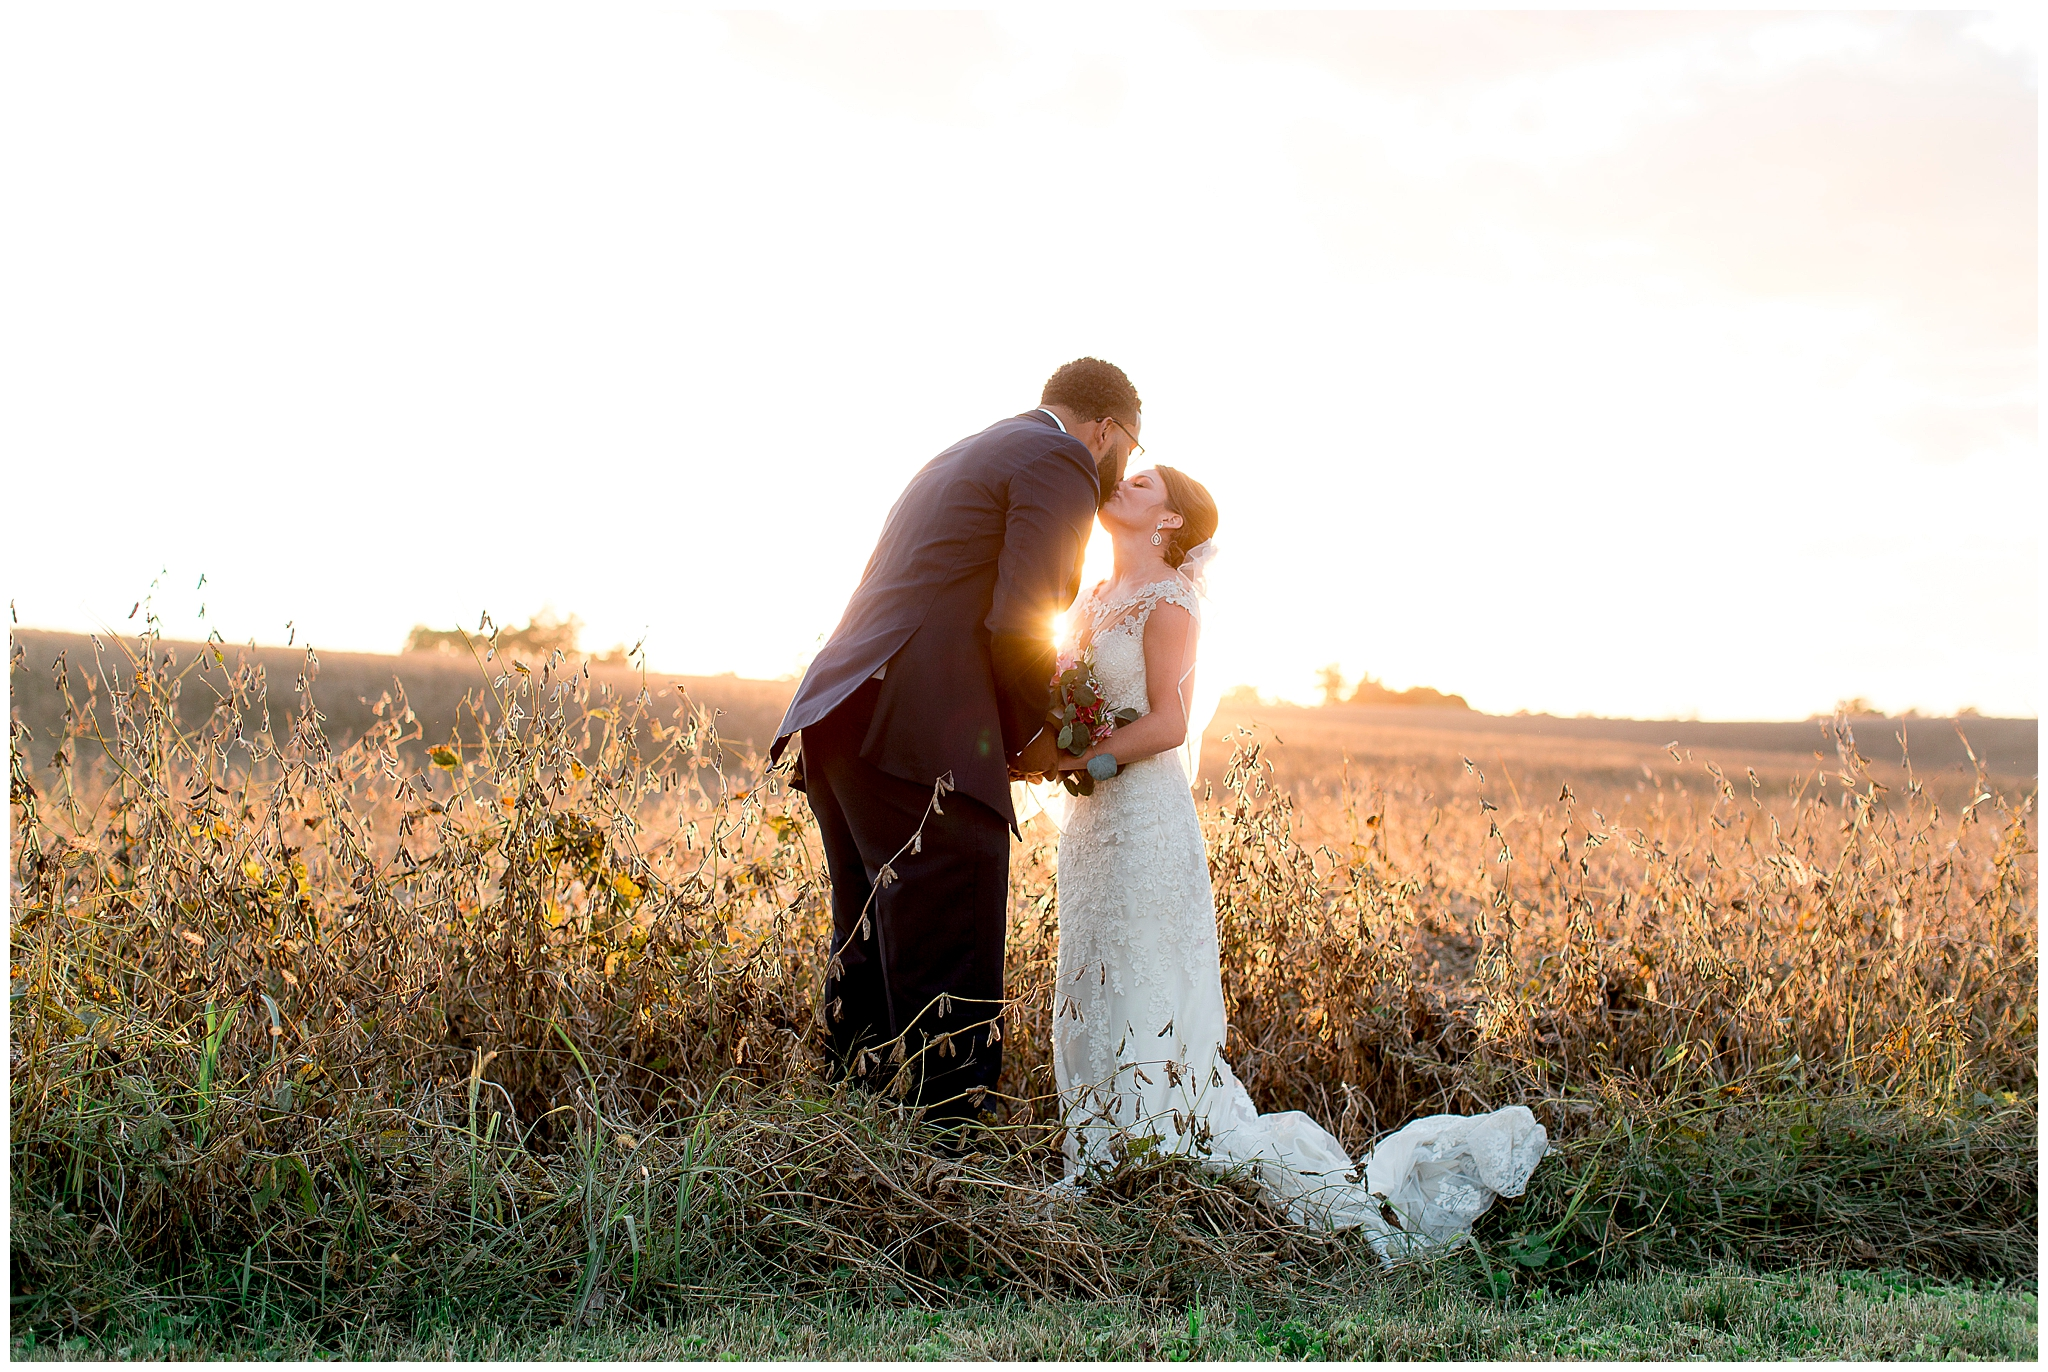 Morgan and Justin had the perfect fall, barn wedding on October 20th, 2018. Farmstead at Shawnee Trails provided a great location for both the ceremony and reception. It was a chilly day, but I don't think you can tell. The night ended in a stunning sunset that gave the bride and groom photos they will cherish for a lifetime.    Morgan started the day with mimosas and a gorgeous floral robe that complimented the florals her grandmother put together by hand! The brides wedding gown had a sweetheart neckline and sheer fabric with lace florals up to her collarbone. The dress was purchased at Meant to Be Boutique in Lexington, Ky. The bridesmaids wore maroon gowns that had sheer lace from their knee to their feet, I love the uniqueness of them!    Family means so much to Justin and Morgan and that was evident throughout the day. Morgan got embroidered handkerchiefs for all the special women in their lives and many tears were shed! She looked forward to the dance with her dad for such a long time and it was everything Morgan dreamed it would be! Justin and Morgan ended the night being celebrated out by all their loved ones.